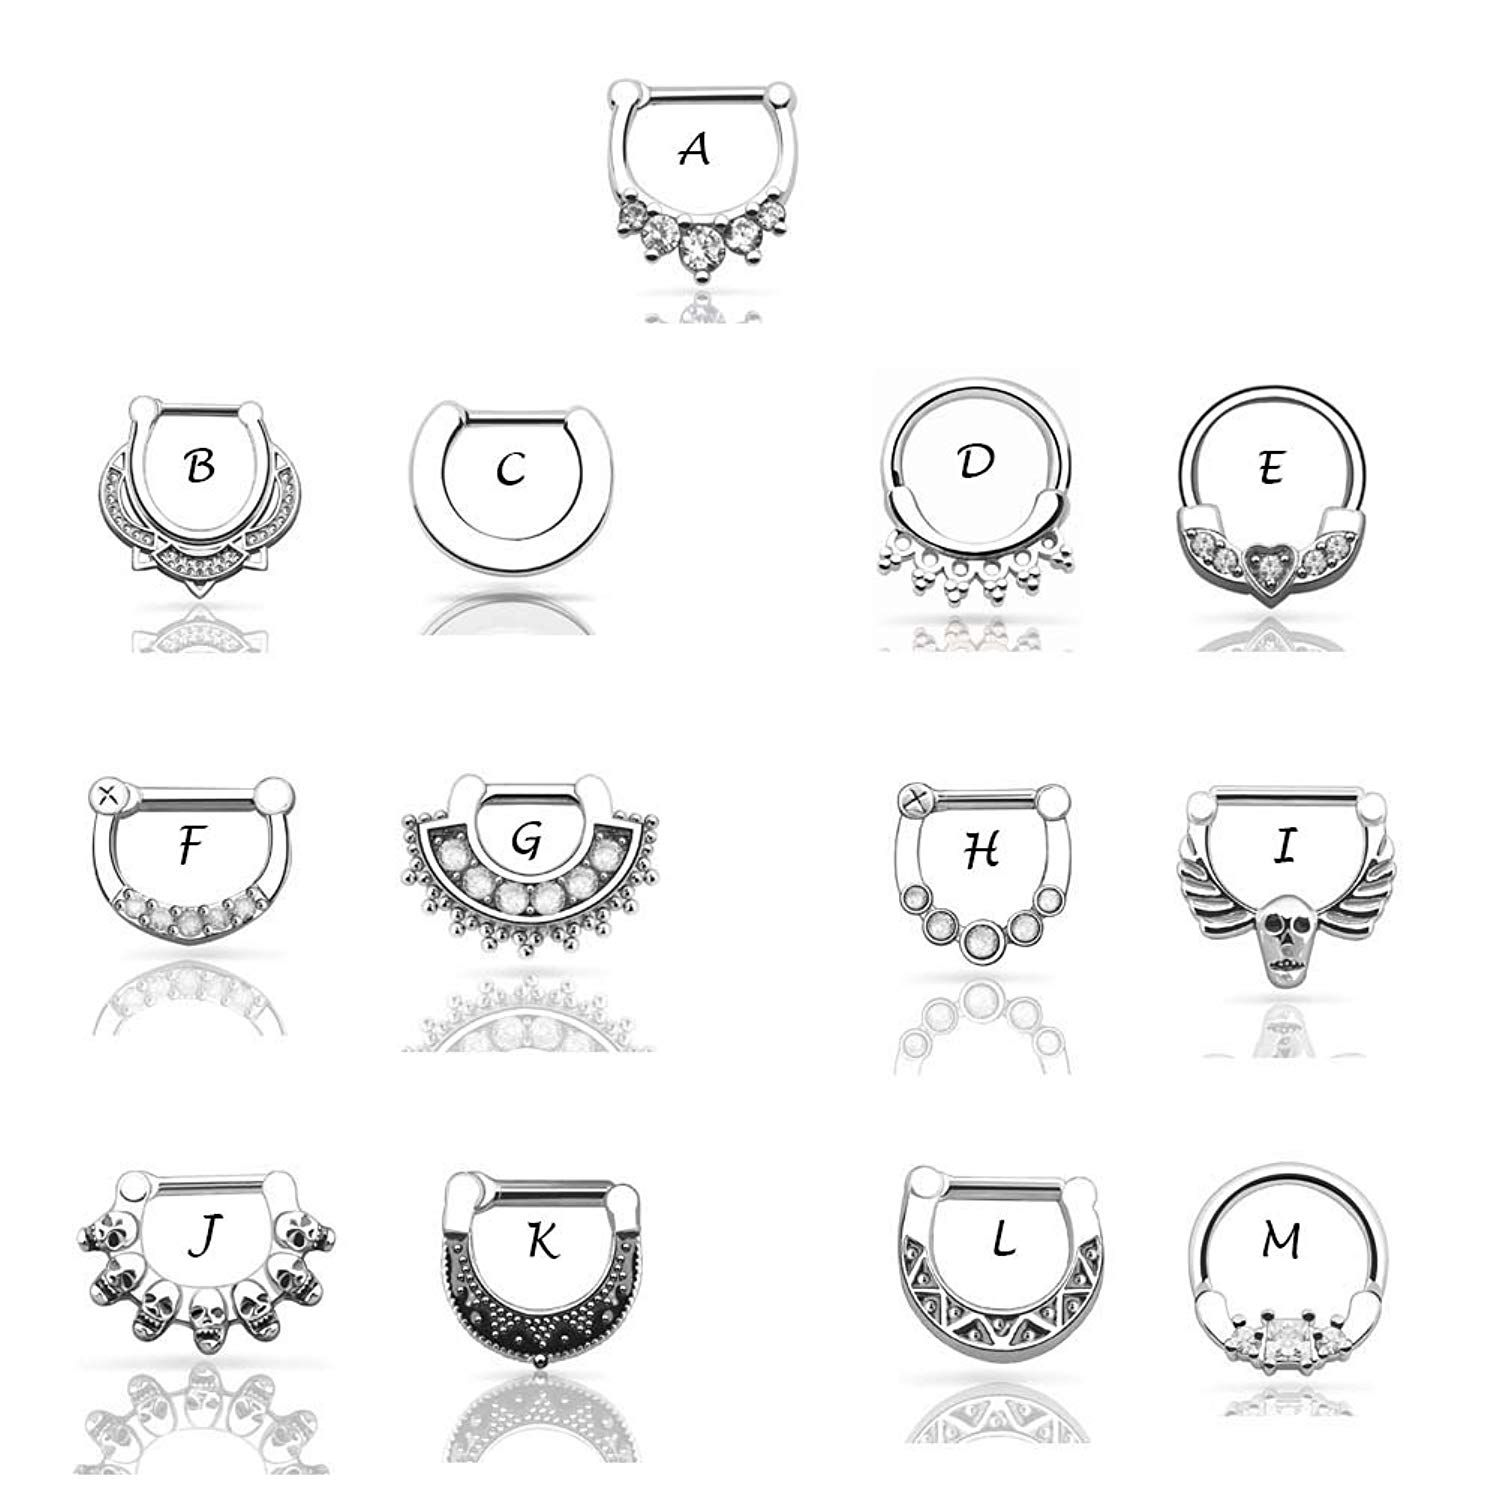 Piercing nose in islam  pcs Multistyles Stainless Steel Nose Cuff Ring Nose Septum Clicker